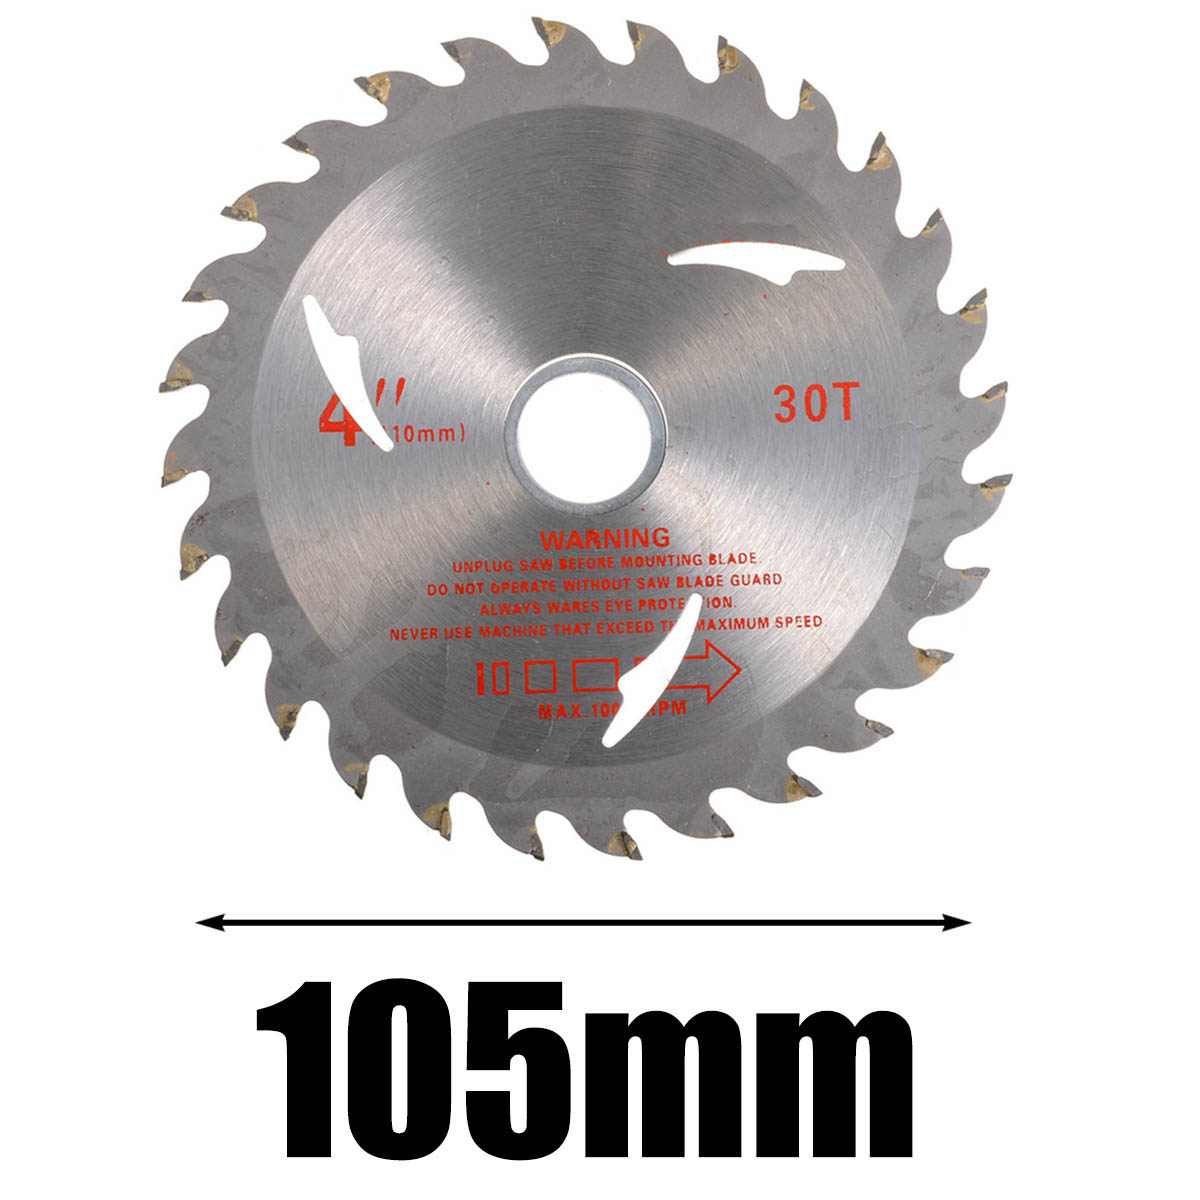 Woodworking Circular Saw Blade 30T 105mm Saw Blades Rotary Saw Cutter Disc Quality Cemented Carbide Universal For Wood Cutting